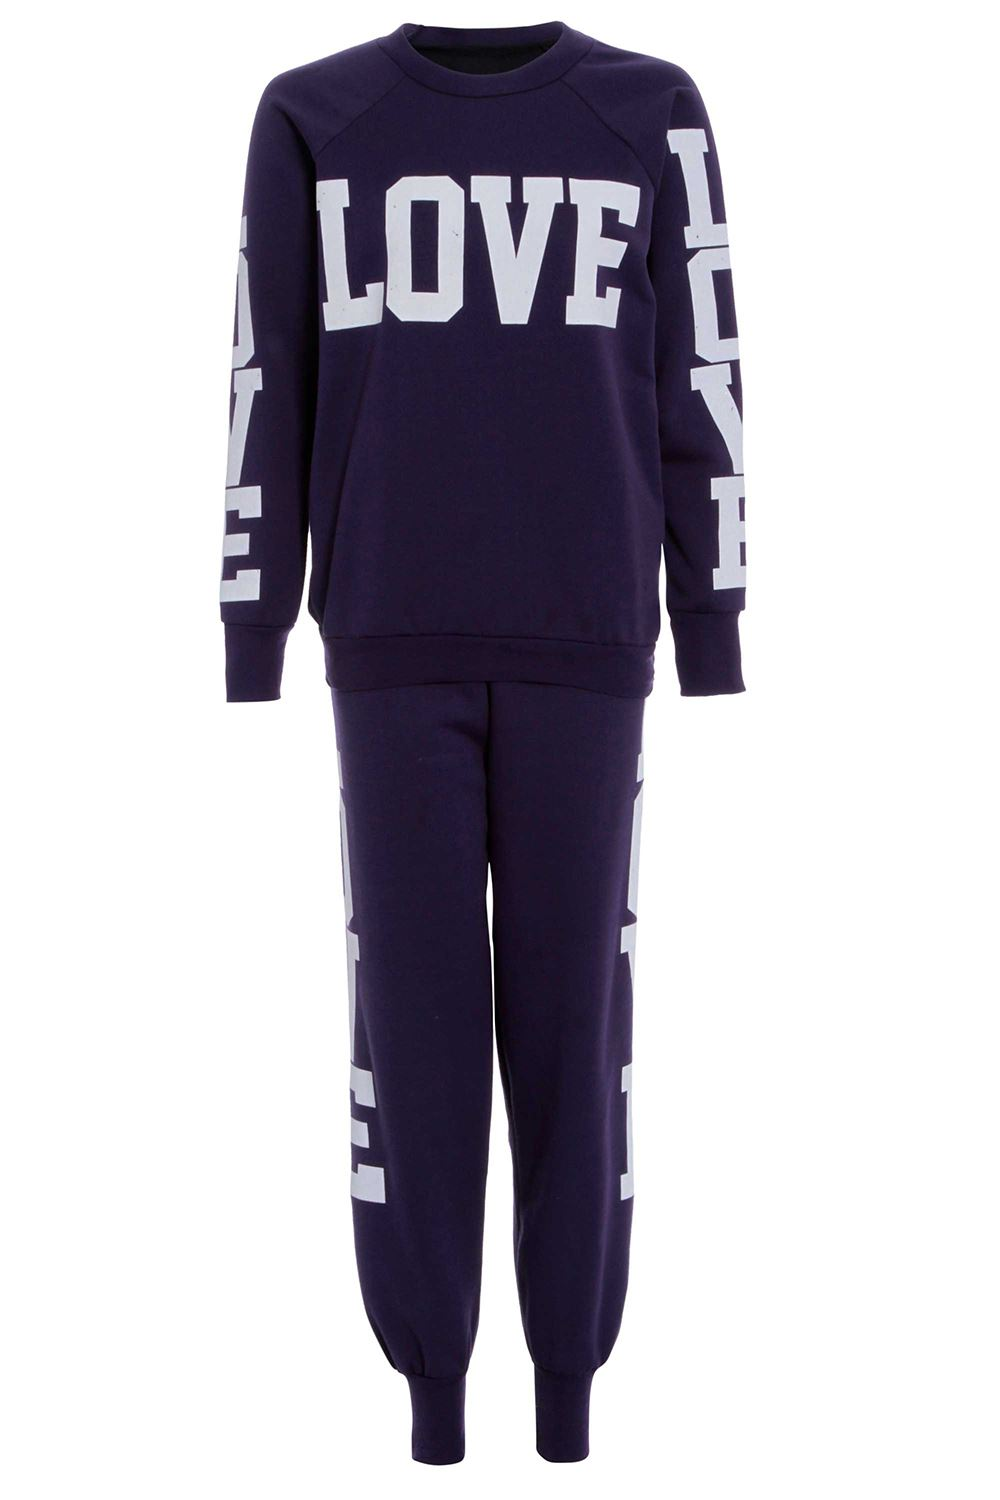 Damen Trainingsanzug Sweatshirt Top Love New York 98 Brooklyn 76 Joggen Hosen